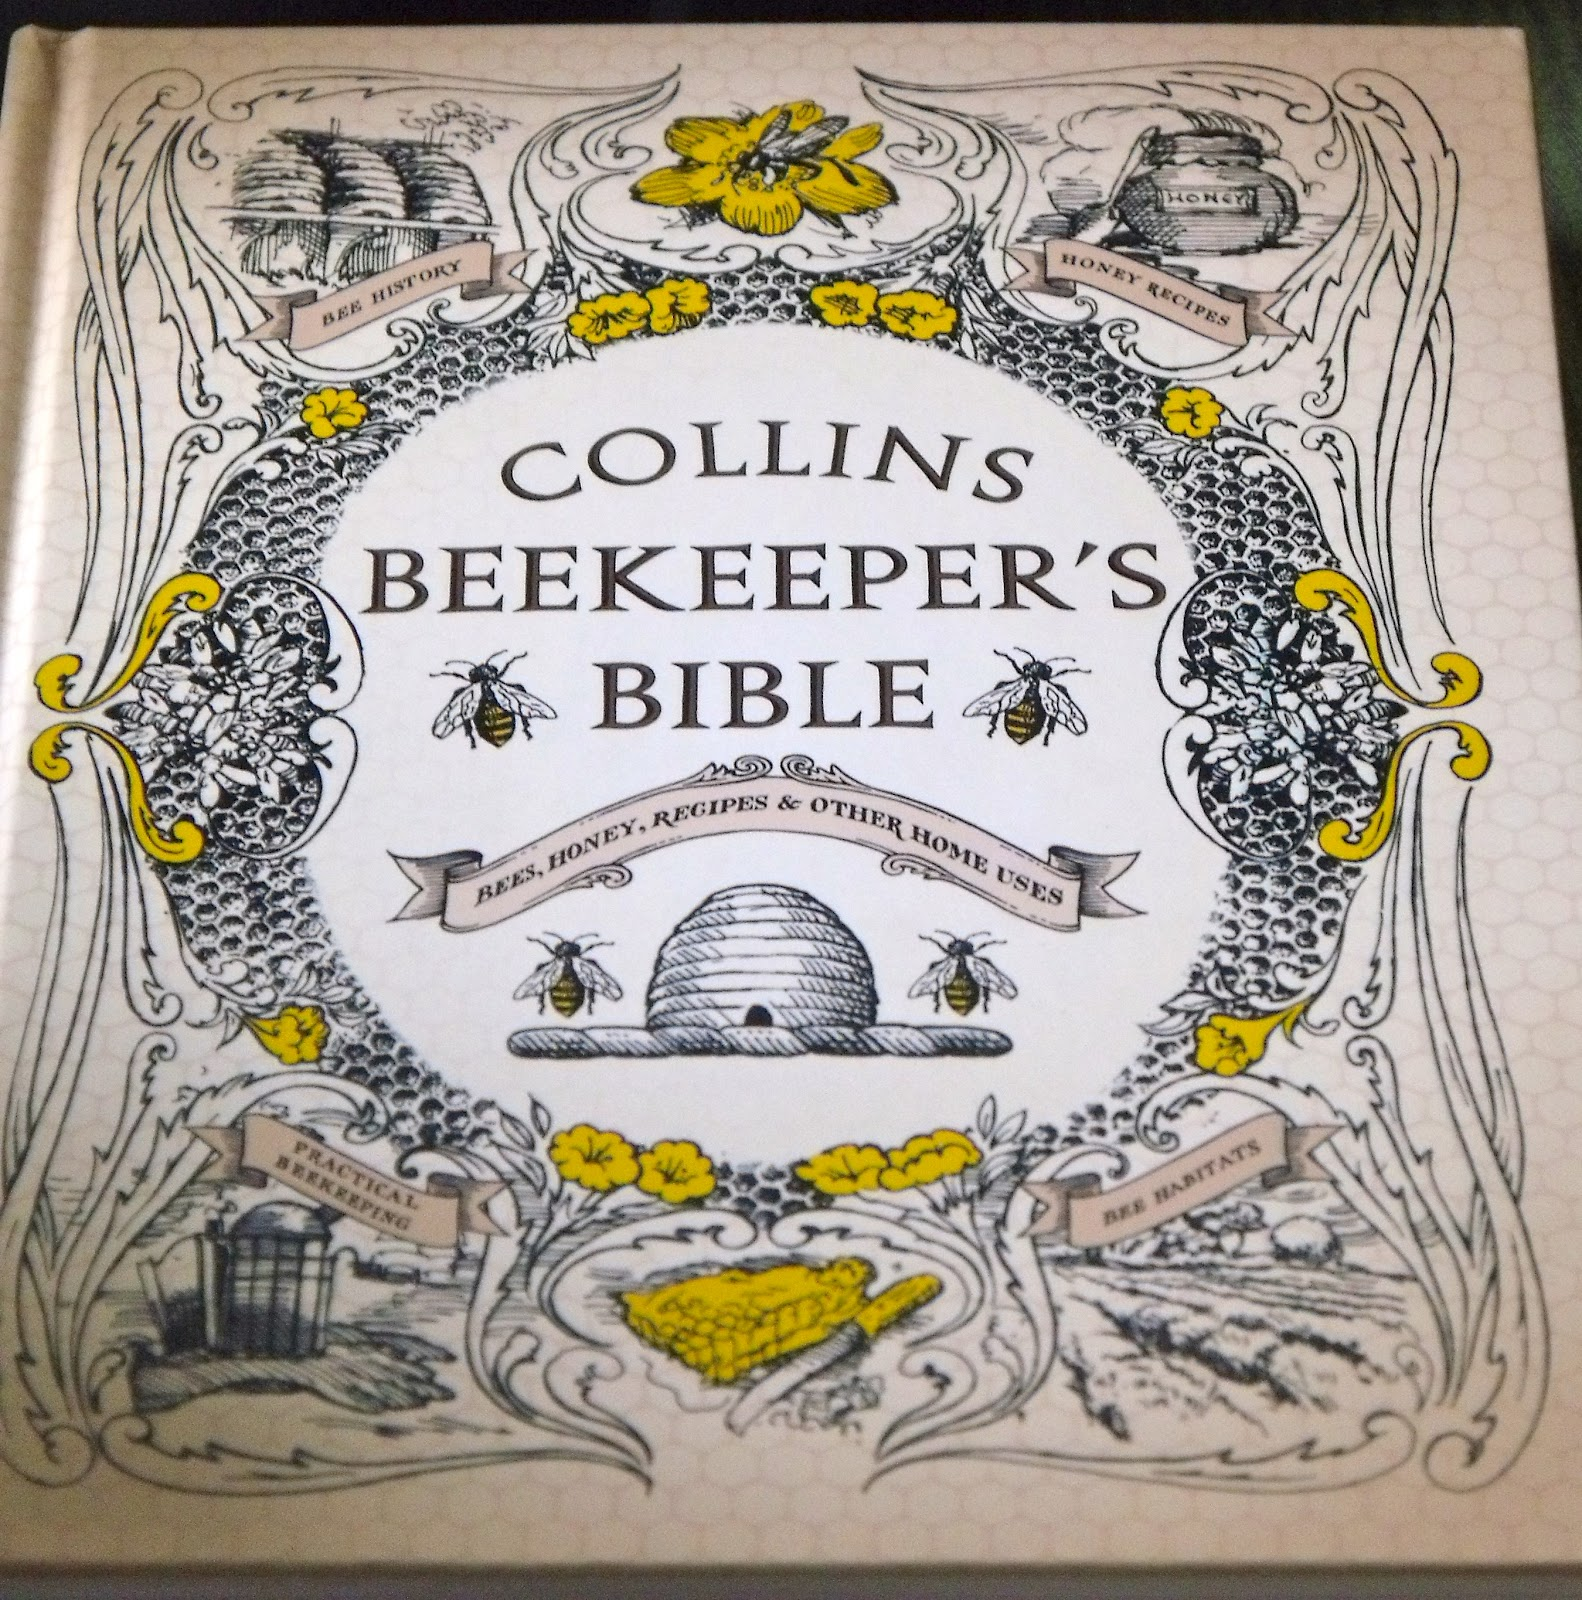 christine s blog locating compassion in land ethics conference a the bee keeper s bible